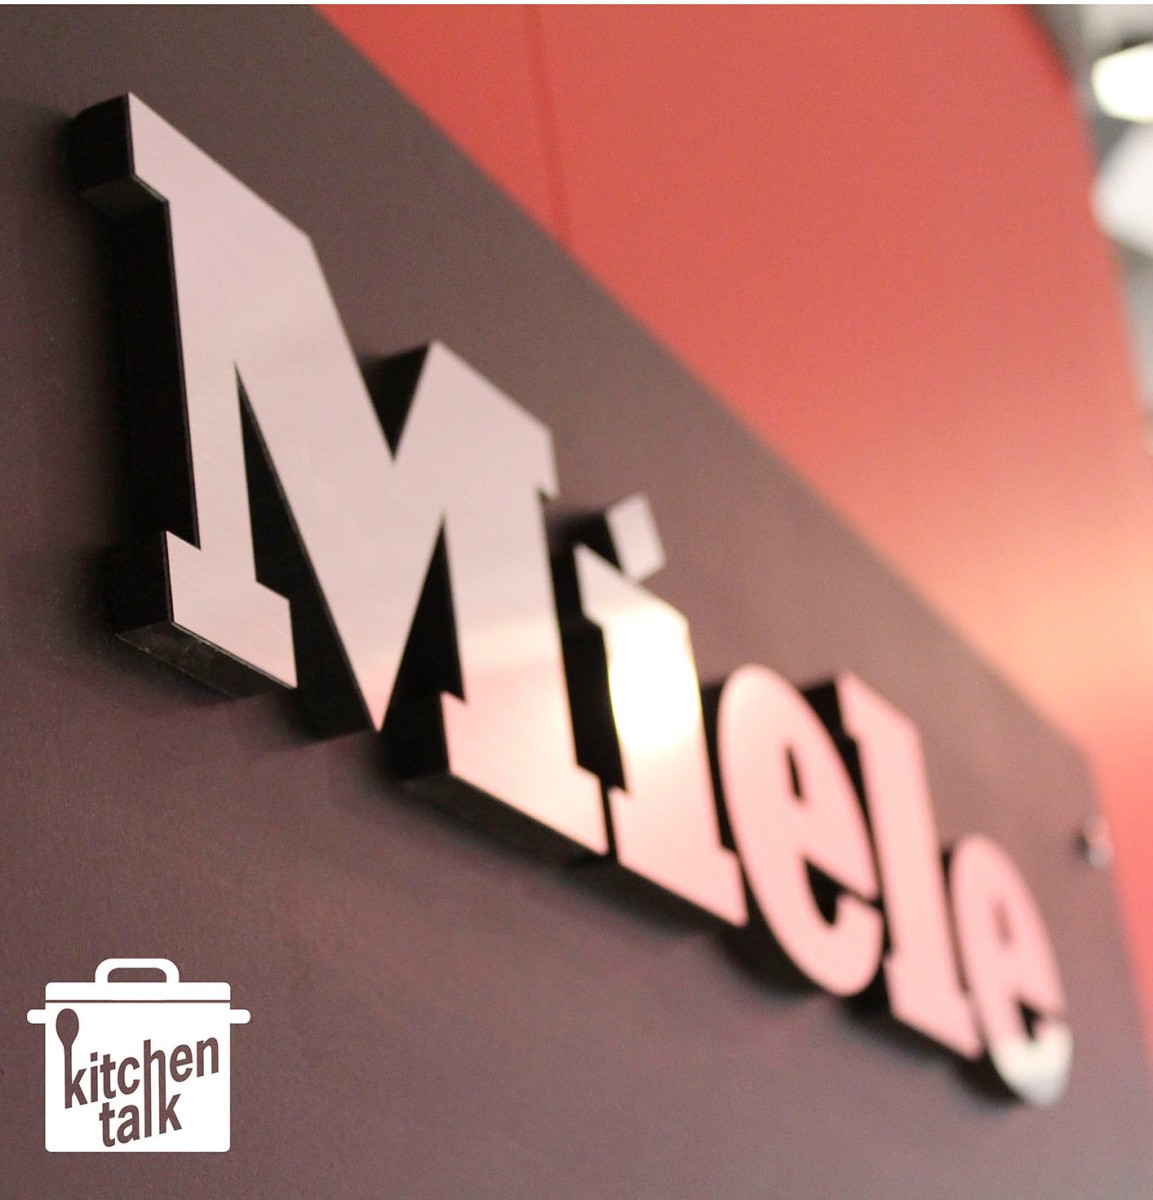 Miele Home Appliances @ IFA 2013 - Digital Home, Design Worlds & a new Washing Machine W1